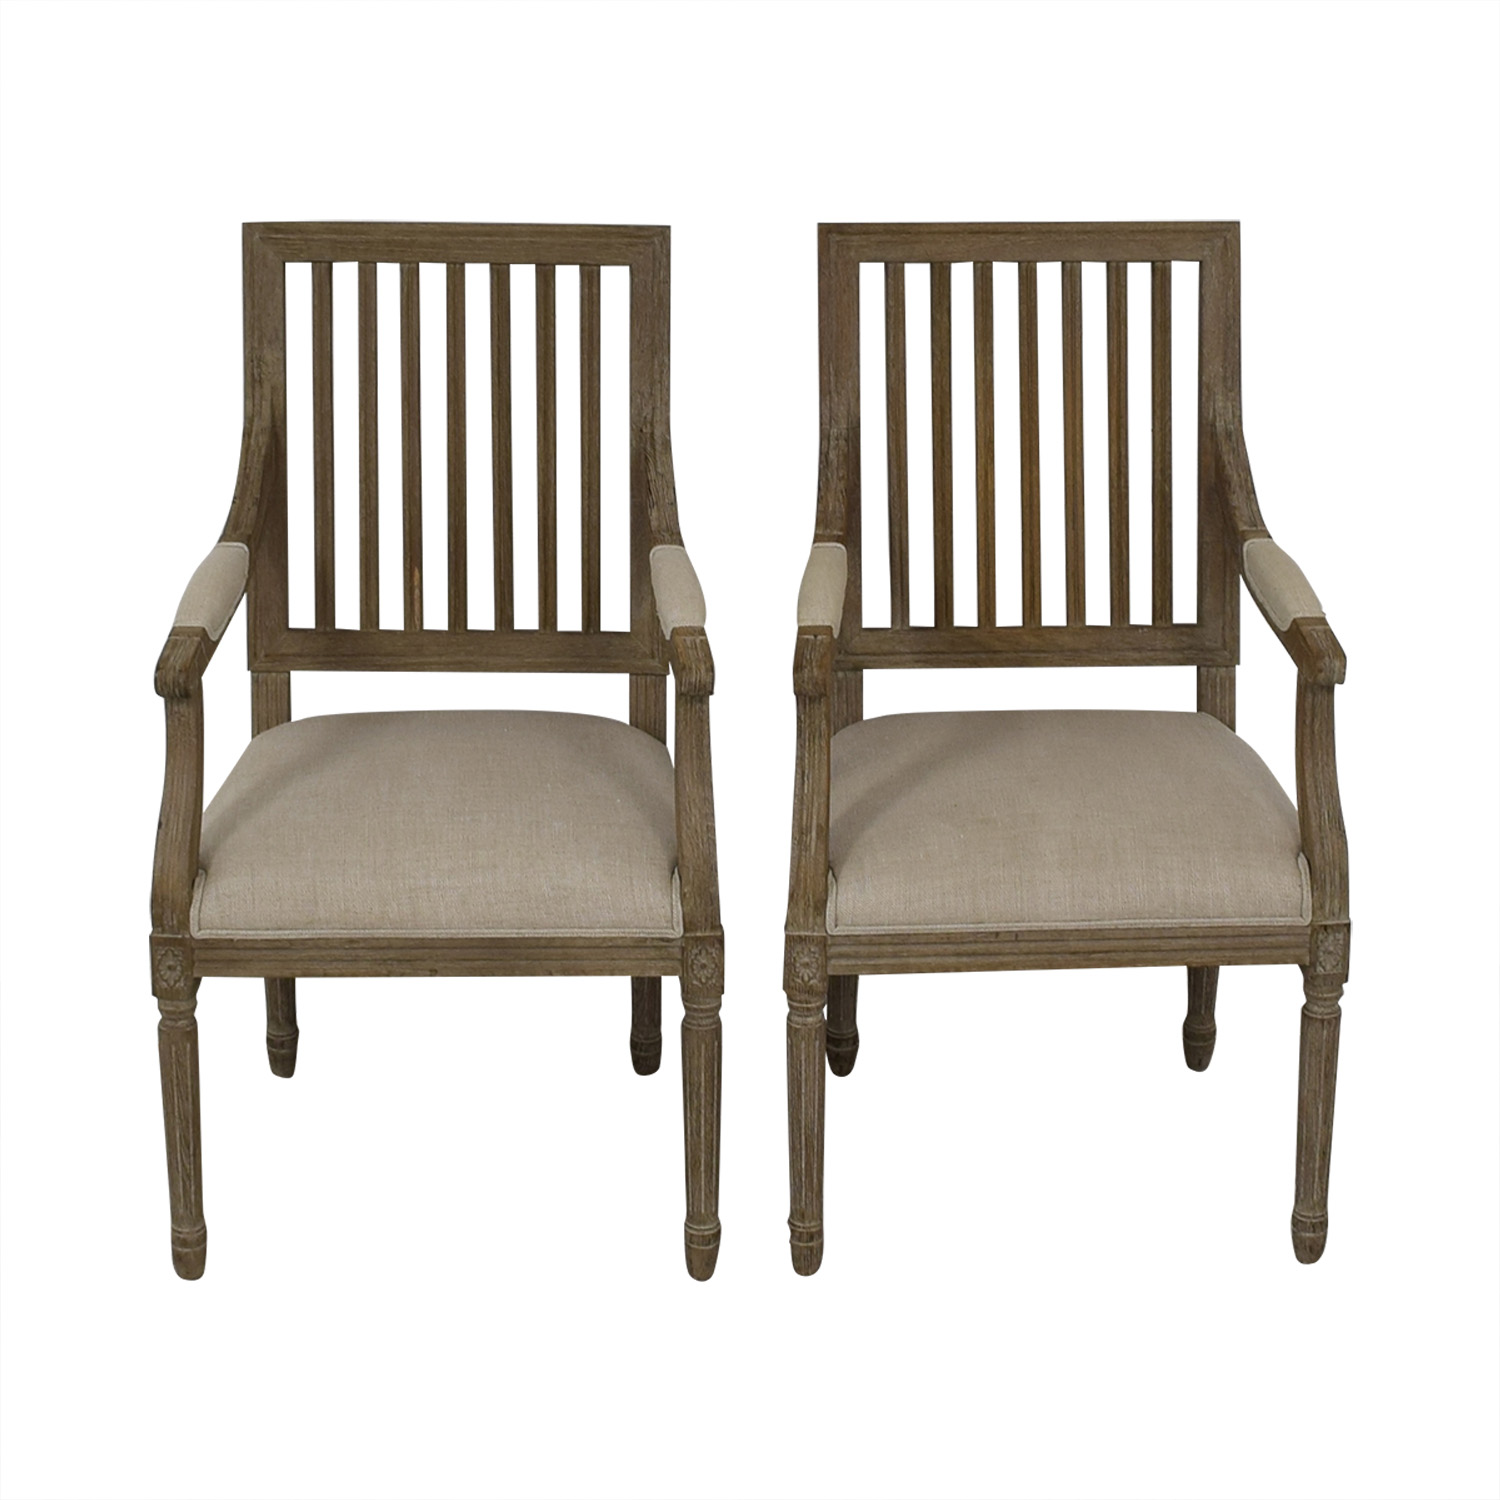 Restoration Hardware Restoration Hardware Spindle Back Dining Chairs used